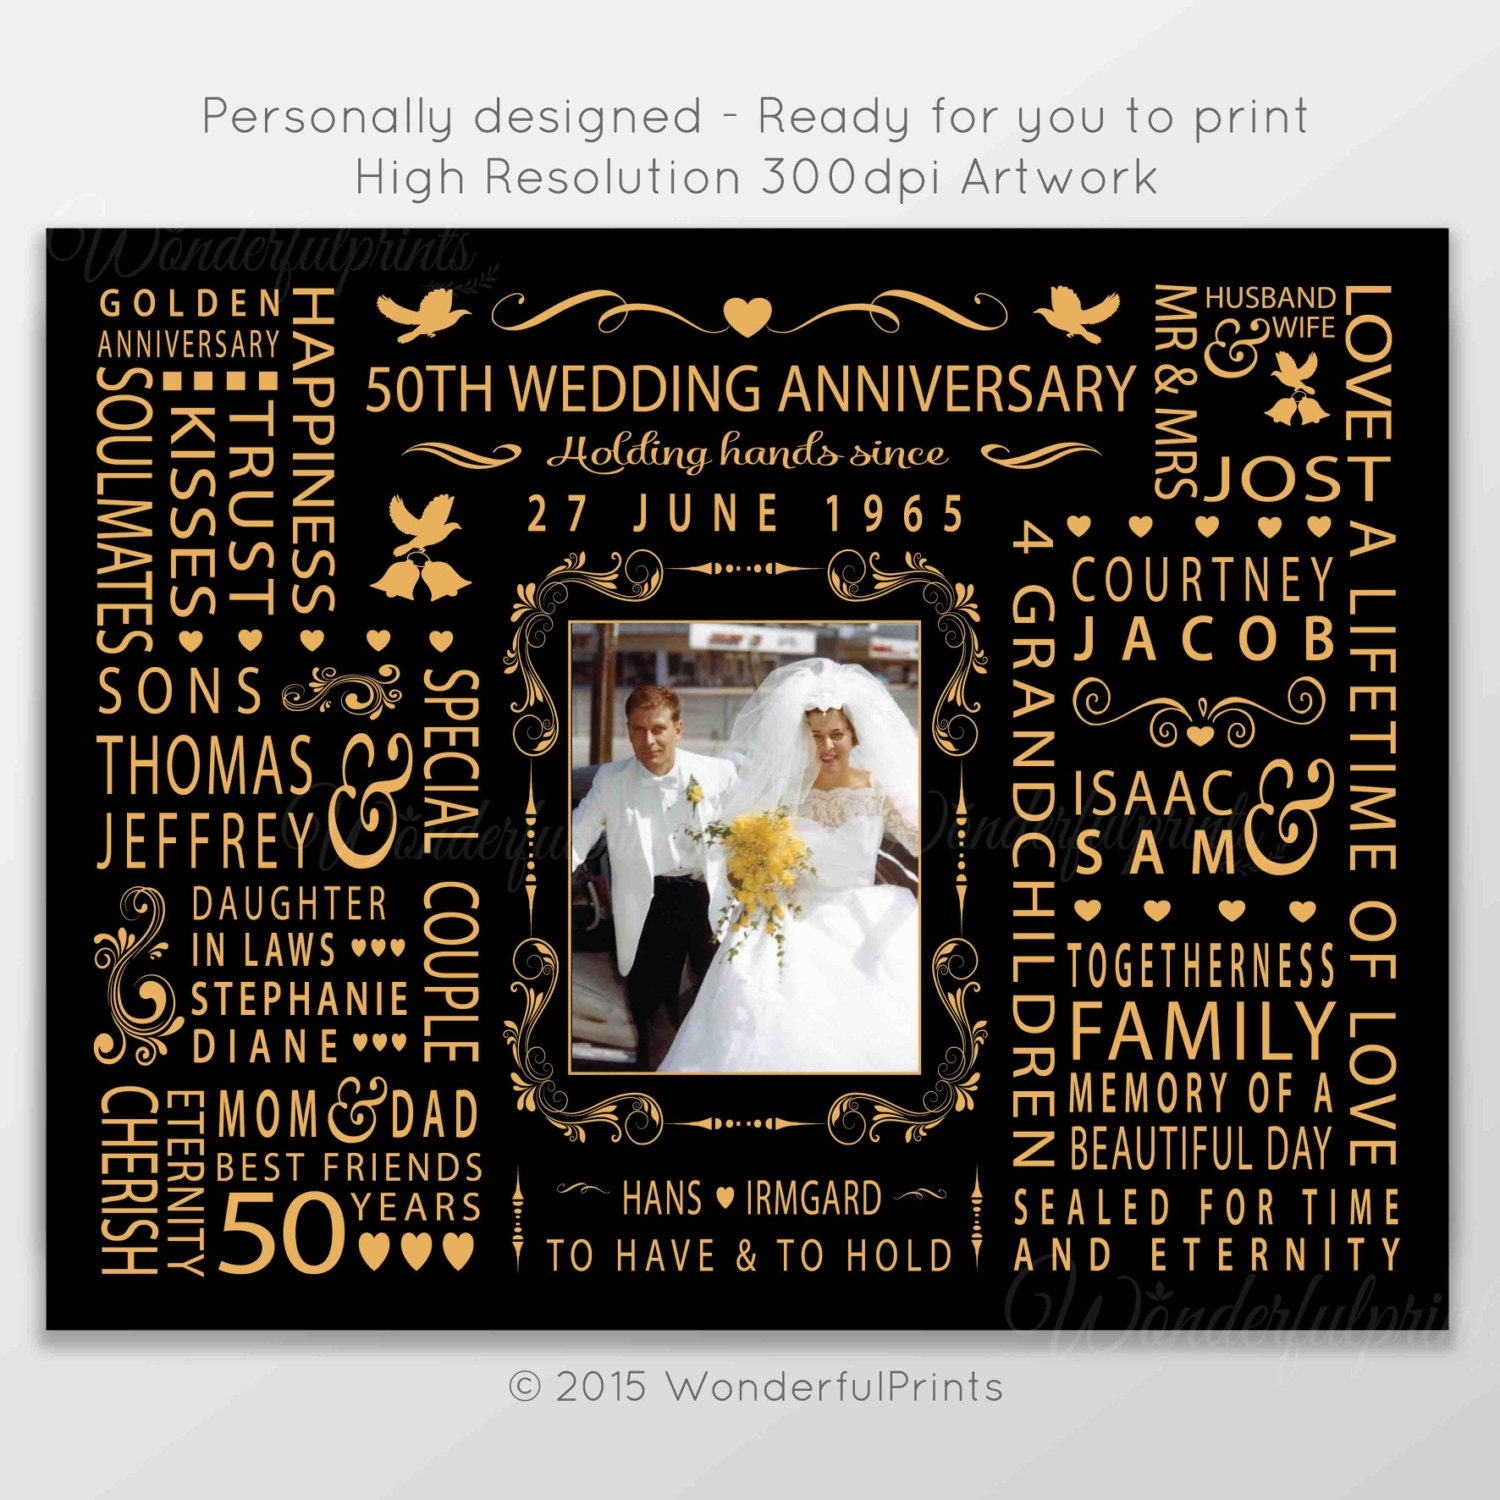 Wedding Anniversary Gift For New Mom : 50th Wedding Anniversary Gift for Mom and Dad by WonderfulPrints